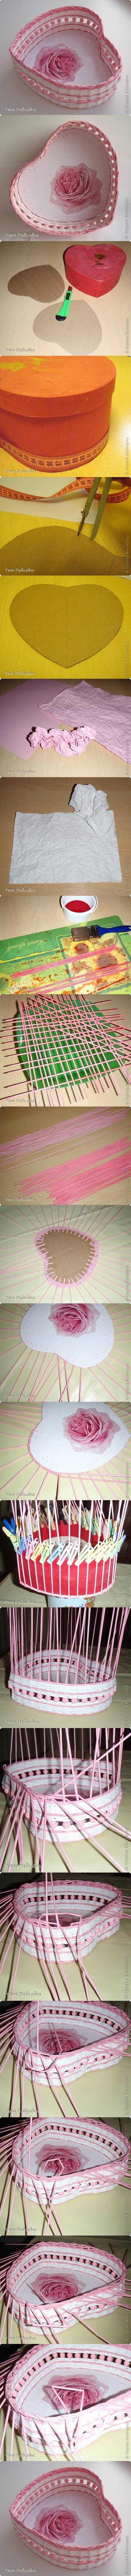 DIY Heart Paper Basket